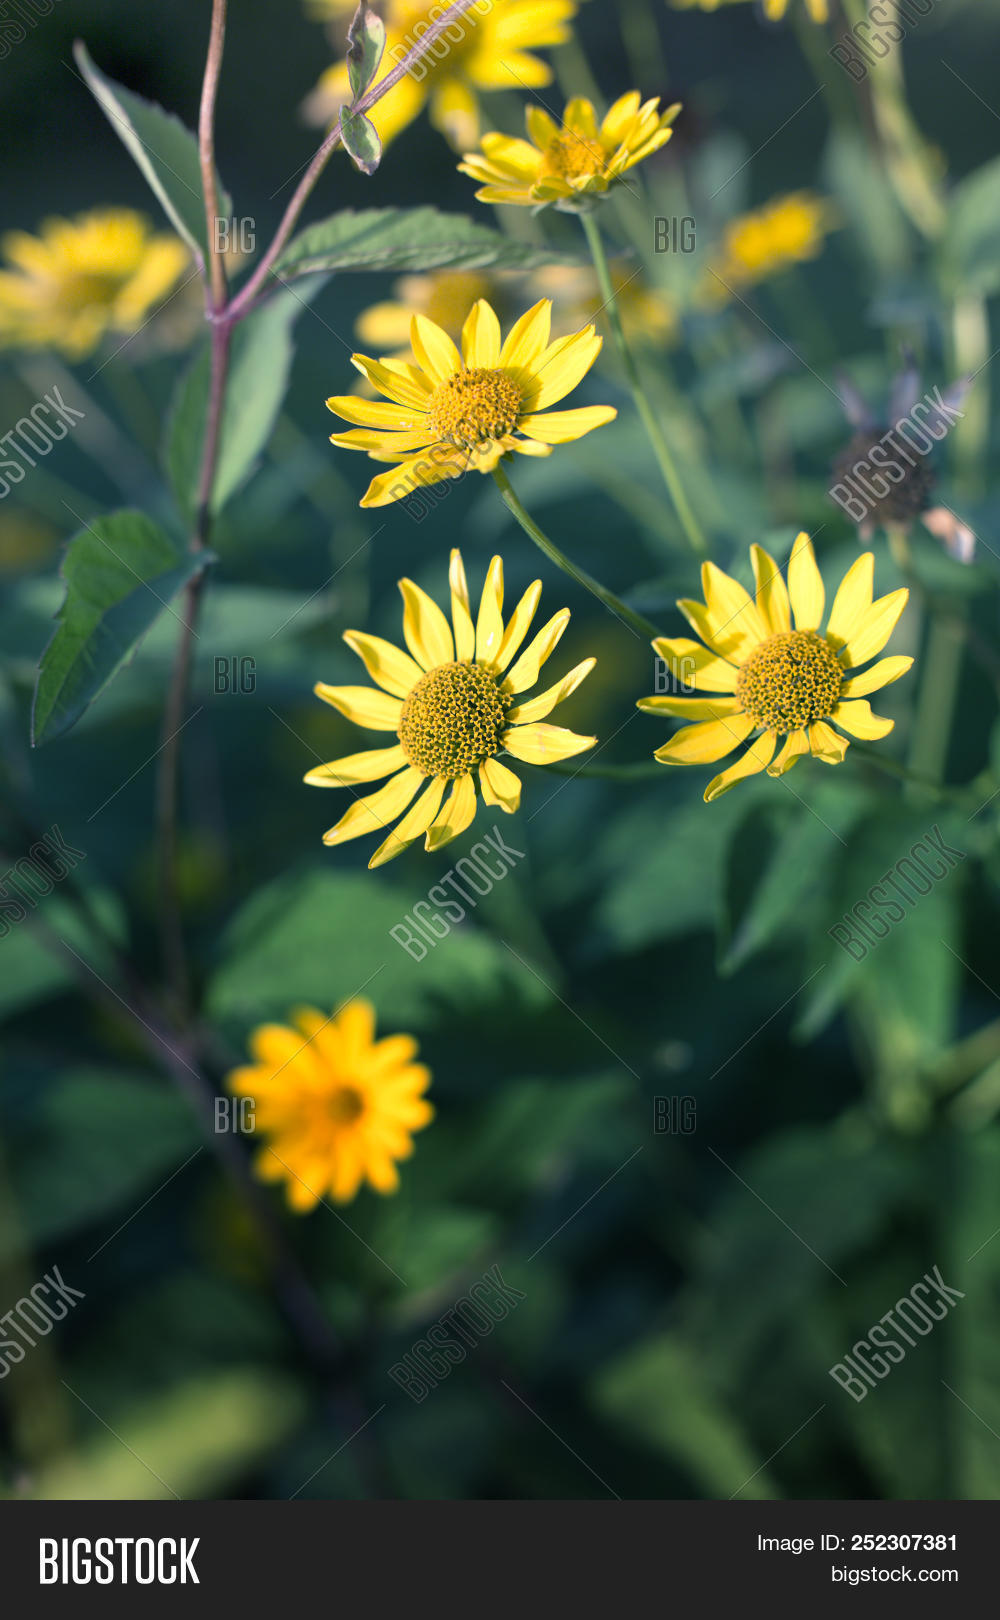 Sunny yellow flowers image photo free trial bigstock sunny yellow flowers background cute yellow summer flowerlicate yellow flower fragile delicate mightylinksfo